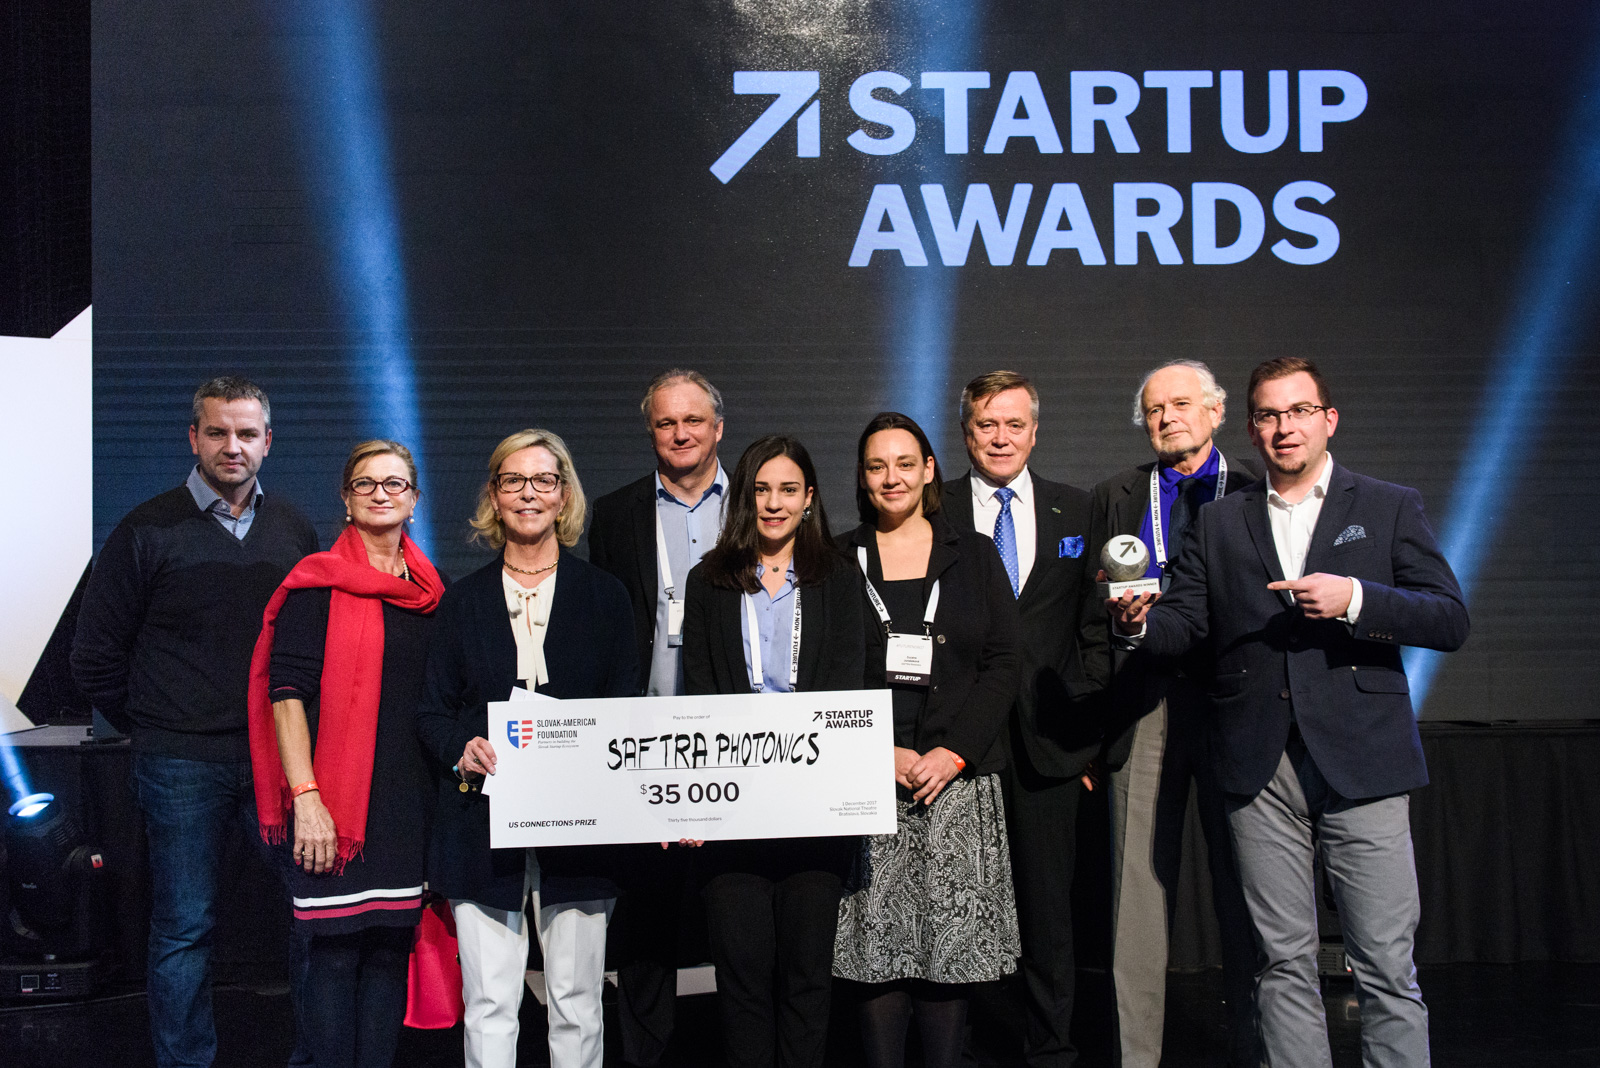 Saftra Photonics, the winner of Startup Awards 2017